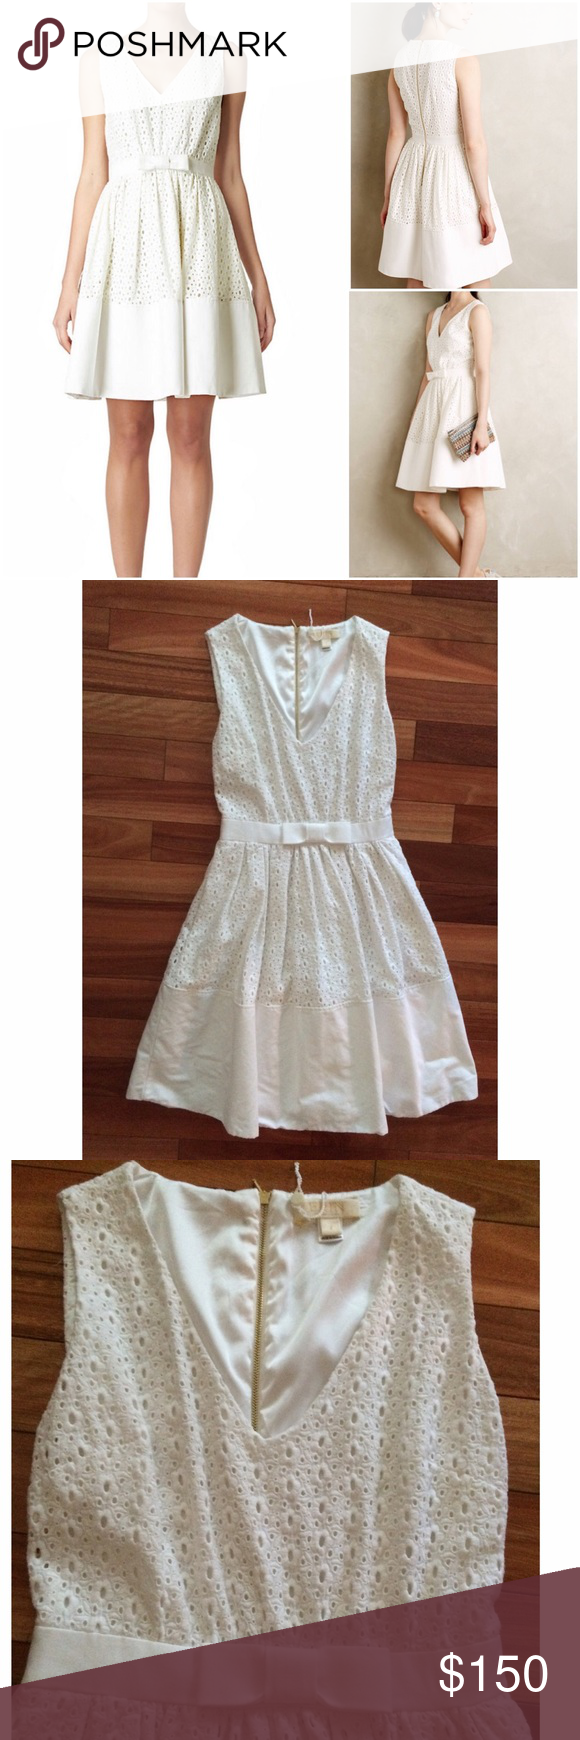 """NWOT Erin Fetherston White Rila Eyelet Dress Brand new without tag. I removed tag to just try It and didn't work for me. Perfect for a bridal party or just to wear. A sweet springtime staple, this eyelet sundress features a flattering belted waist with a darling bow at the center-front.  V-neckline Sleeveless silhouette Banded waist with bow at center-front Soft pleating along waist A-line skirt Solid banded hem Back-zip closure Size 4 measures approx. 37.75"""" length, waist is 13"""", 16"""" pit to…"""